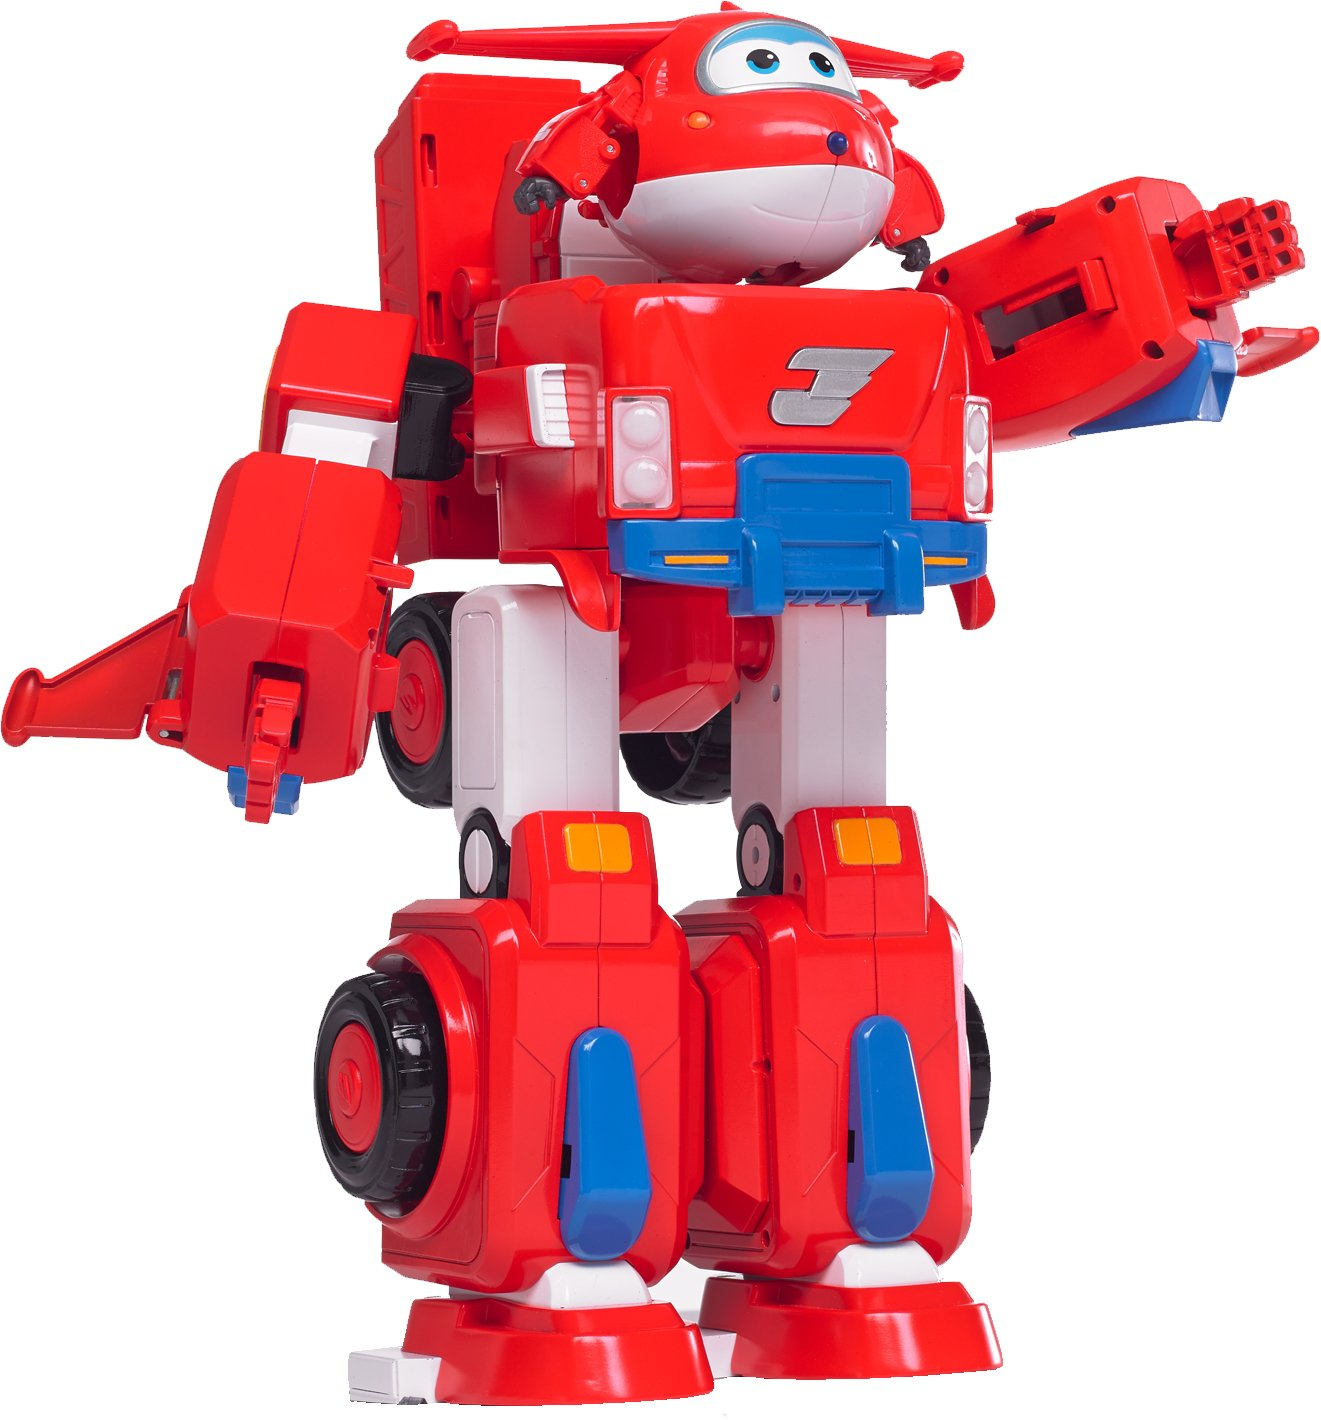 Super Wings - Jett's Super Robot Suit Large Transforming Toy Vehicle | Includes Jett | 5'' Scale by Super Wings -